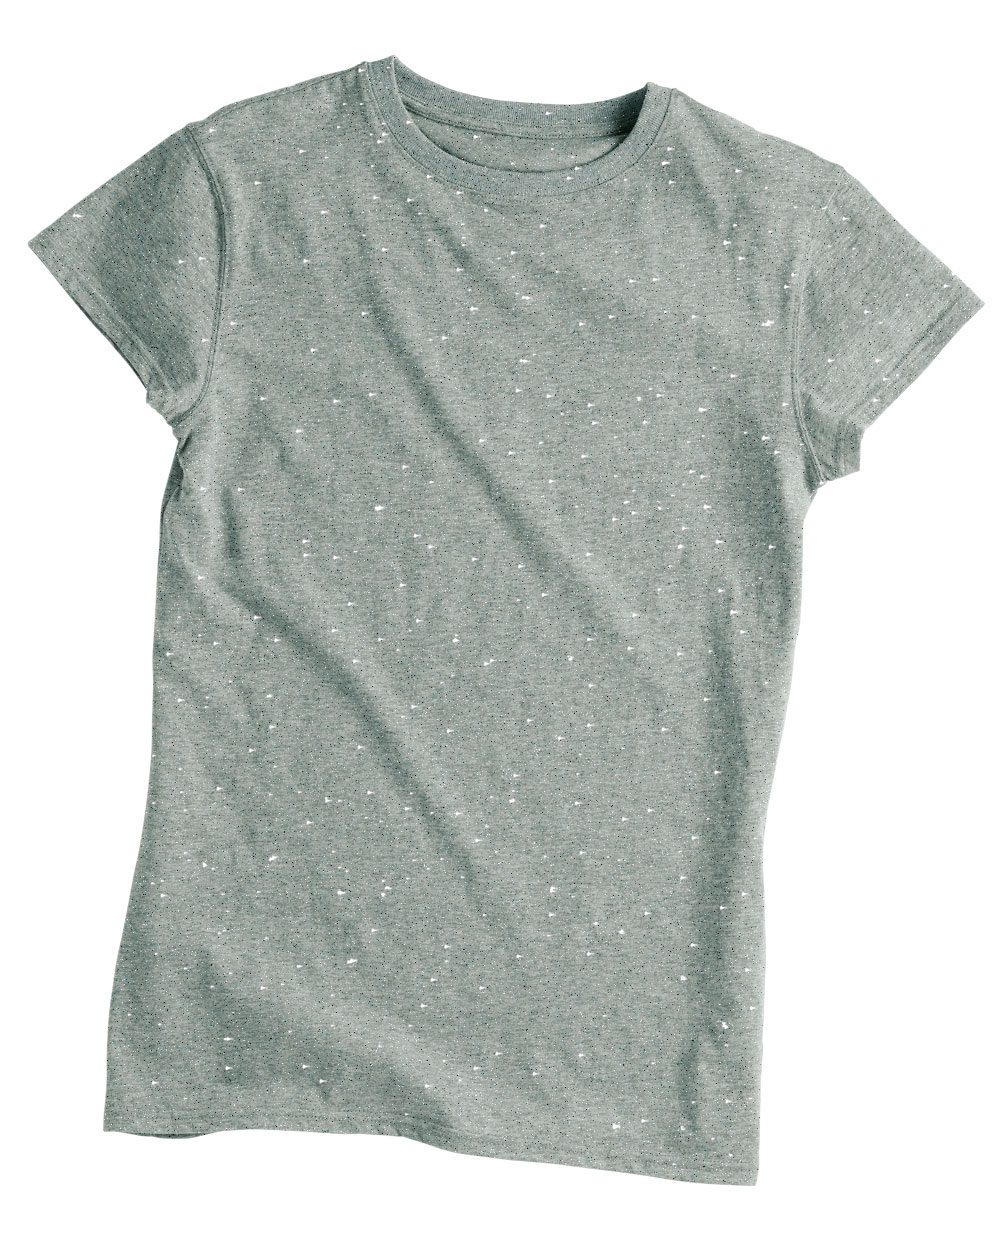 J. America Ladies' Glitter T-Shirt - 8138